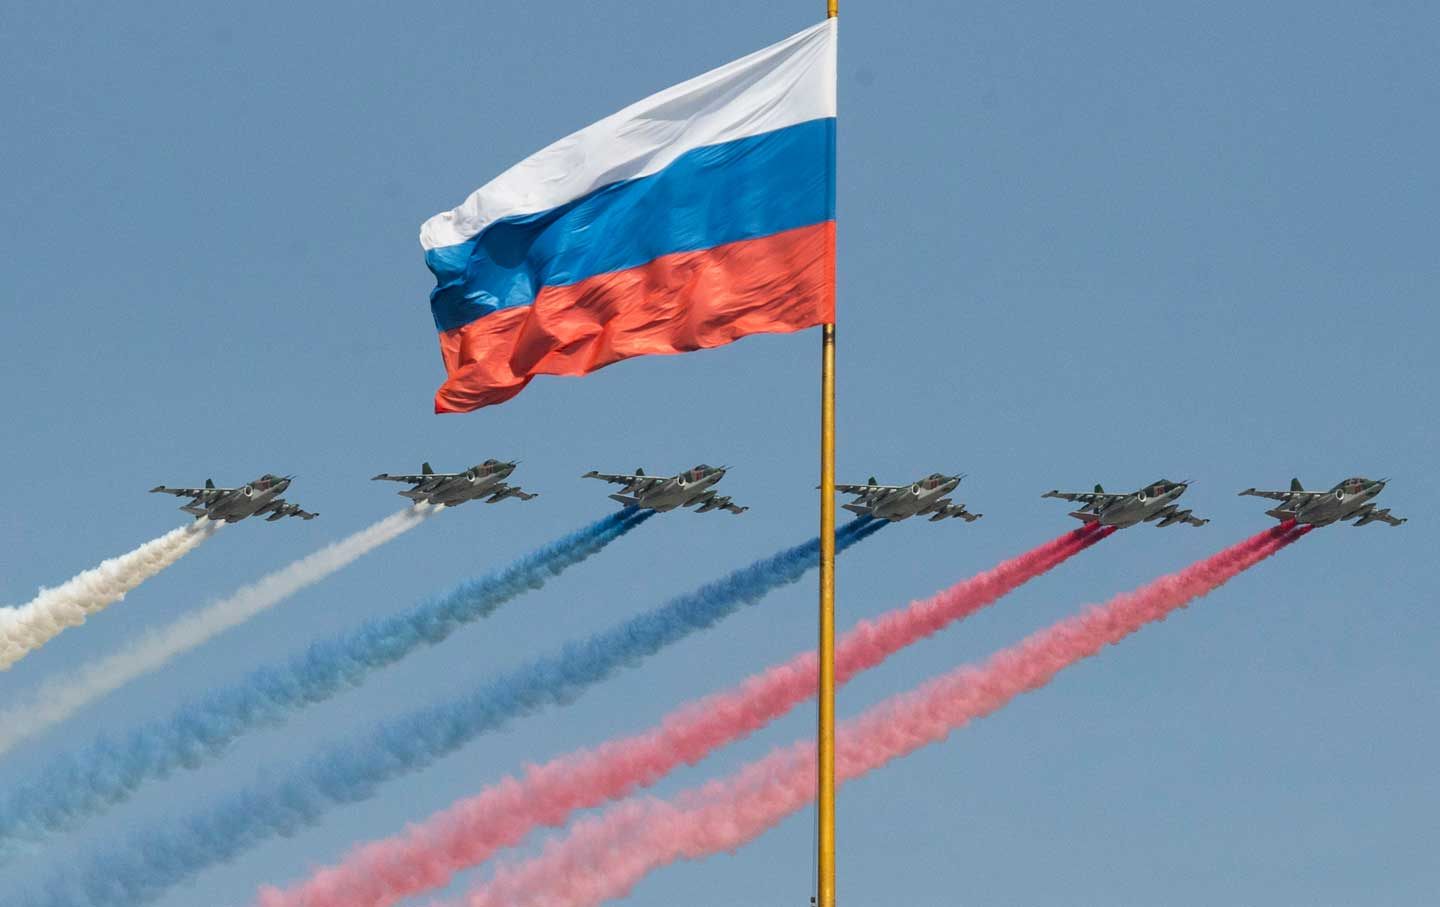 Russian Jets and Flags